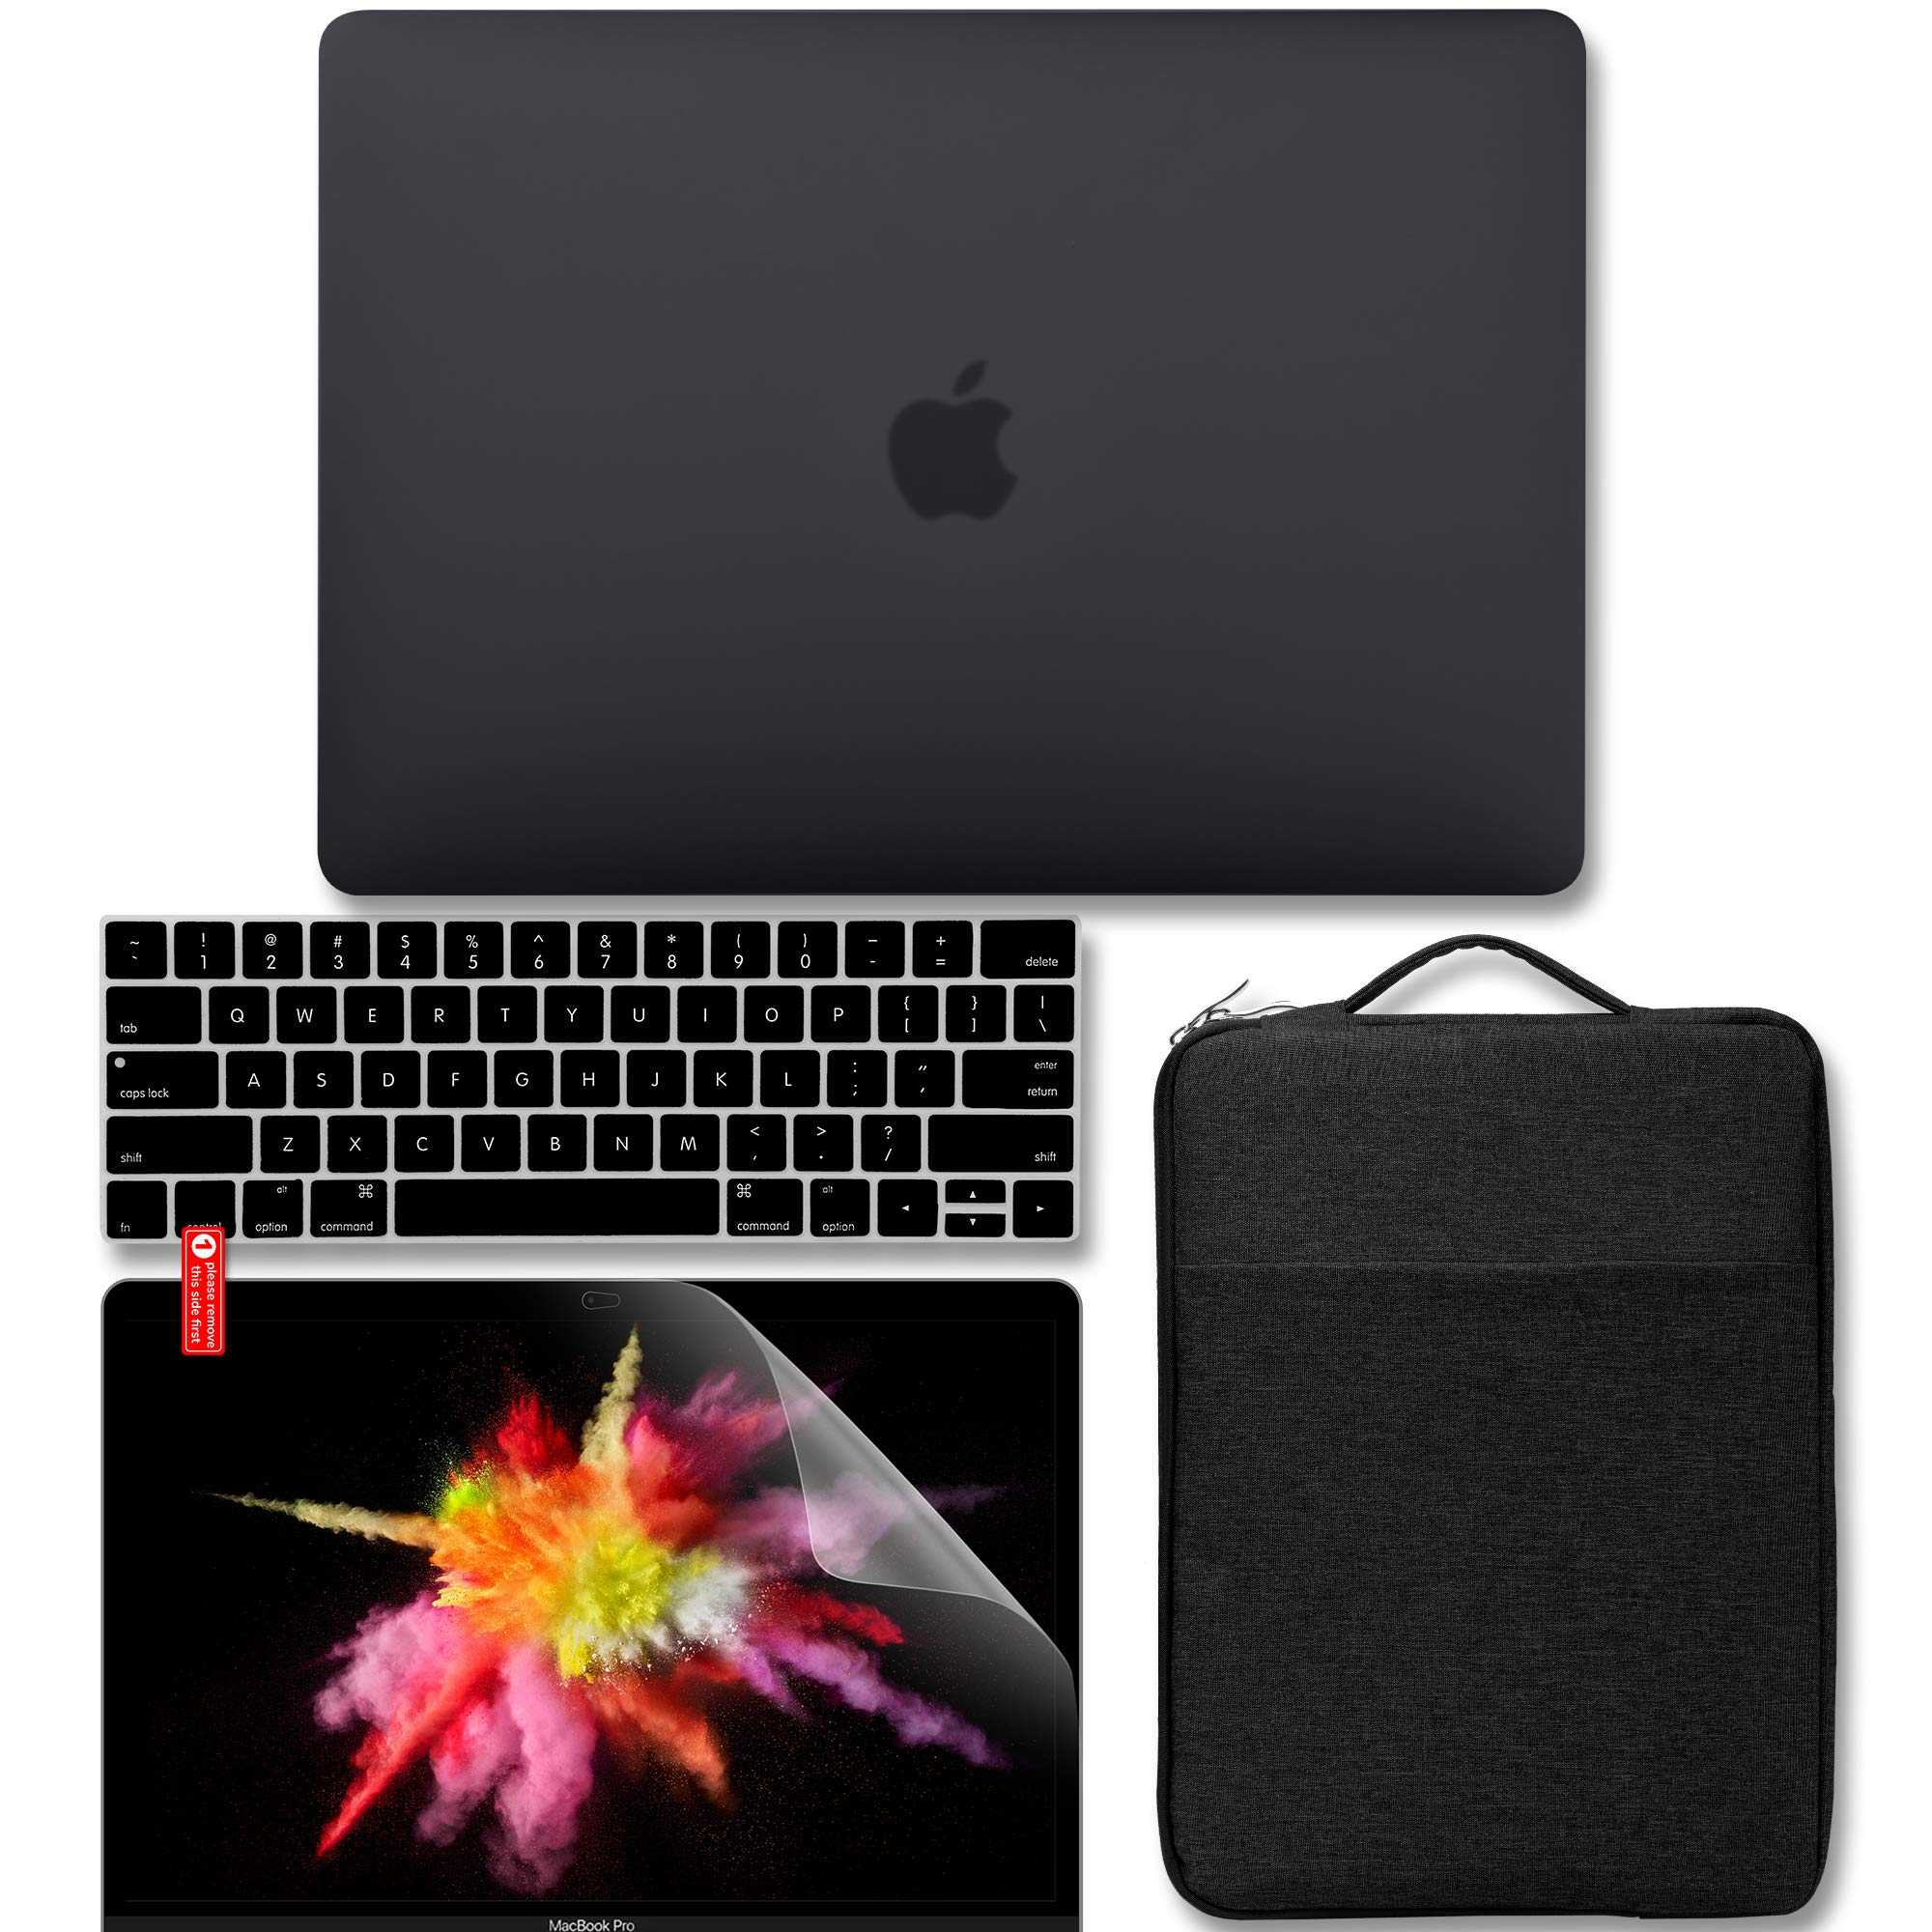 GMYLE MacBook Pro 13 inch Case 2018 2017 2016 Release A1989/A1706/A1708, Plastic Matte Hard Case, Carrying Sleeve Bag, Keyboard Cover & Screen Protector Compatible Newest Mac Pro 13 Inch, Black